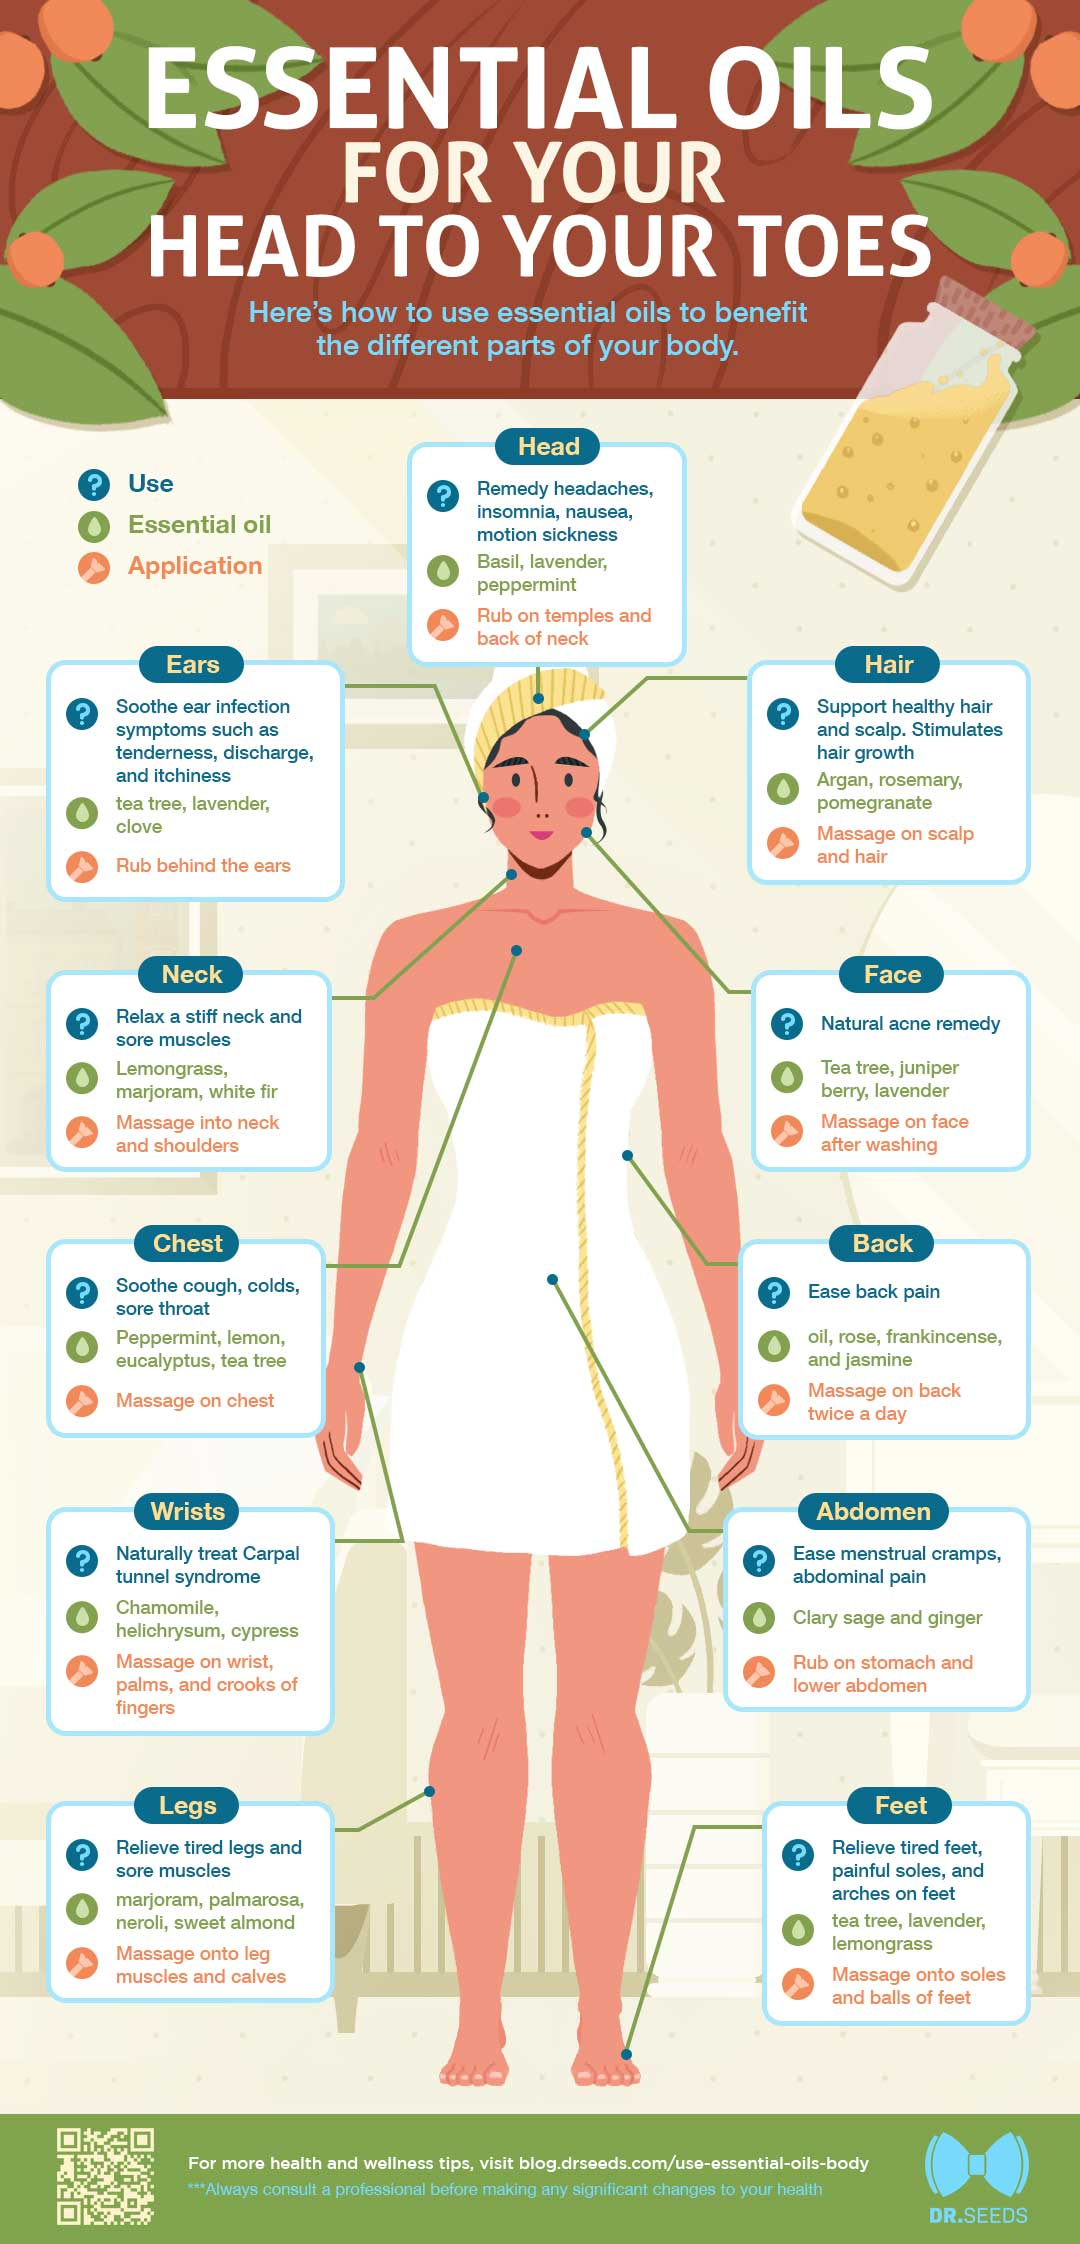 How to Use Essential Oils to Benefit Different Parts of Your Body